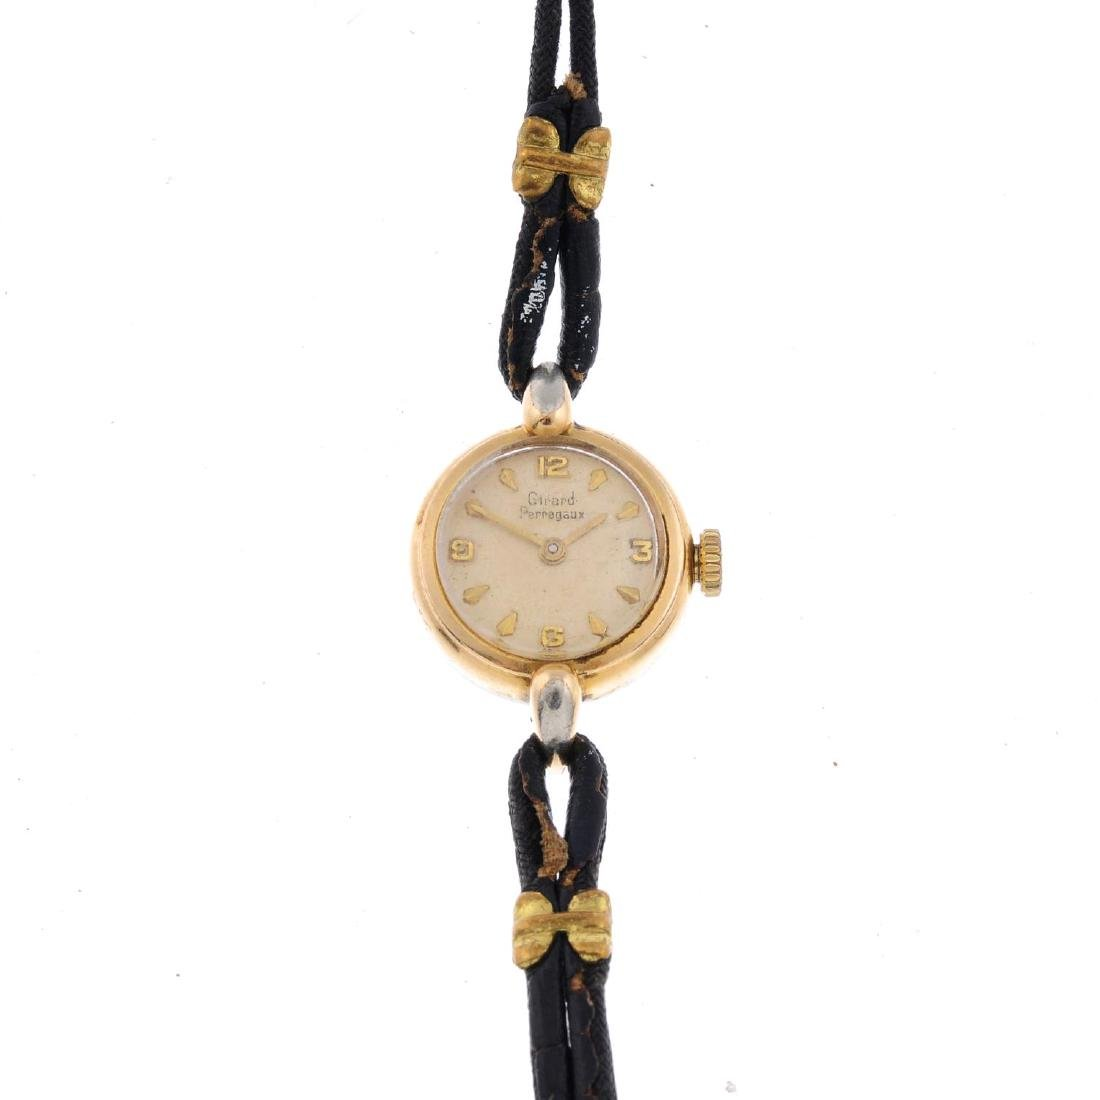 GIRARD-PERREGAUX - a lady's wrist watch. Gold plated